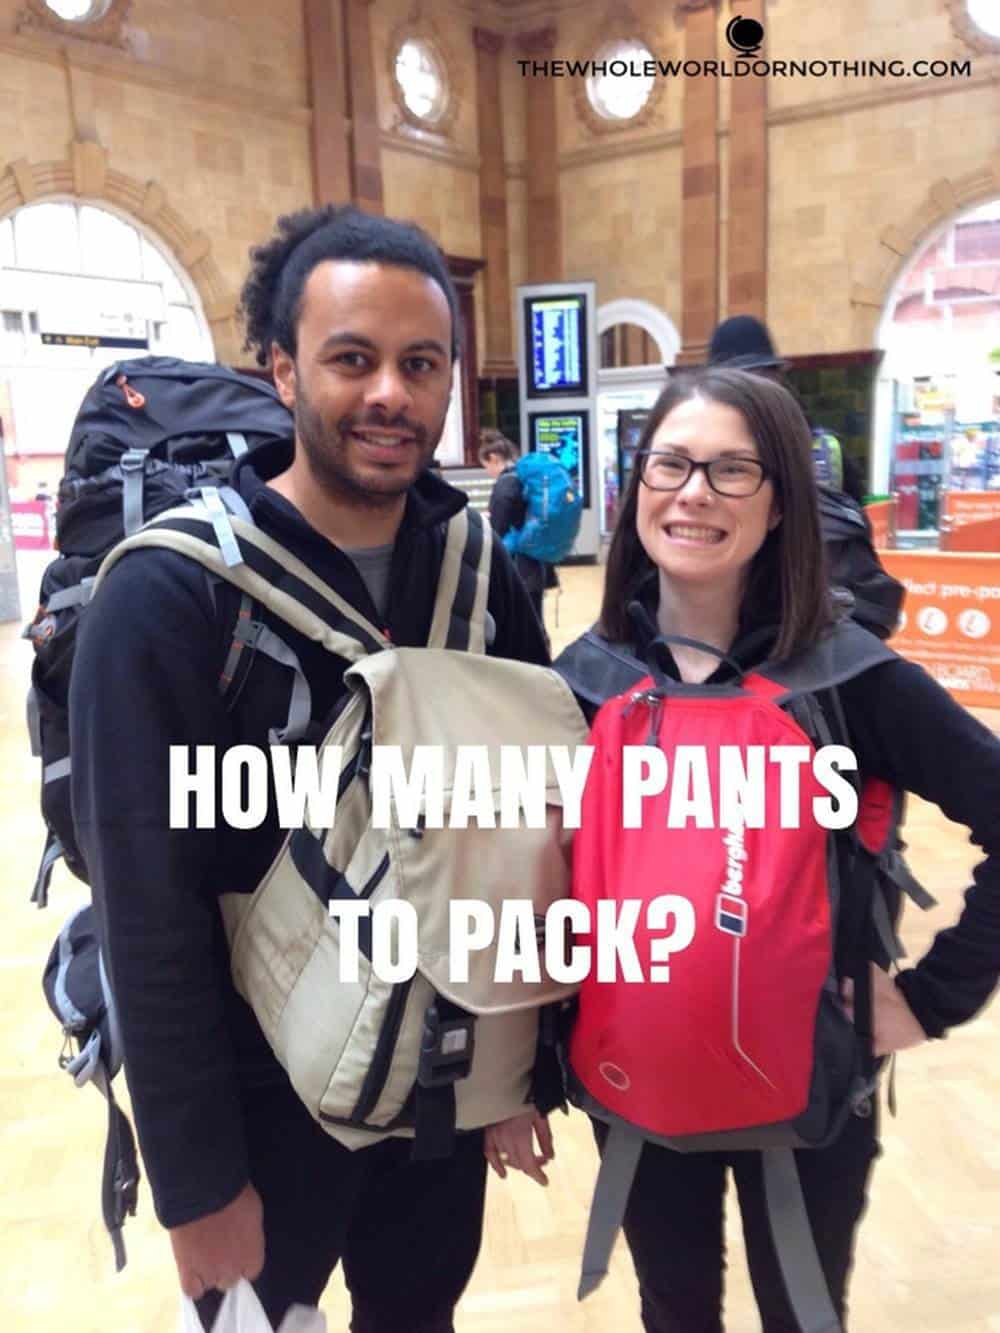 James and Sarah with text overlay How many pants to pack